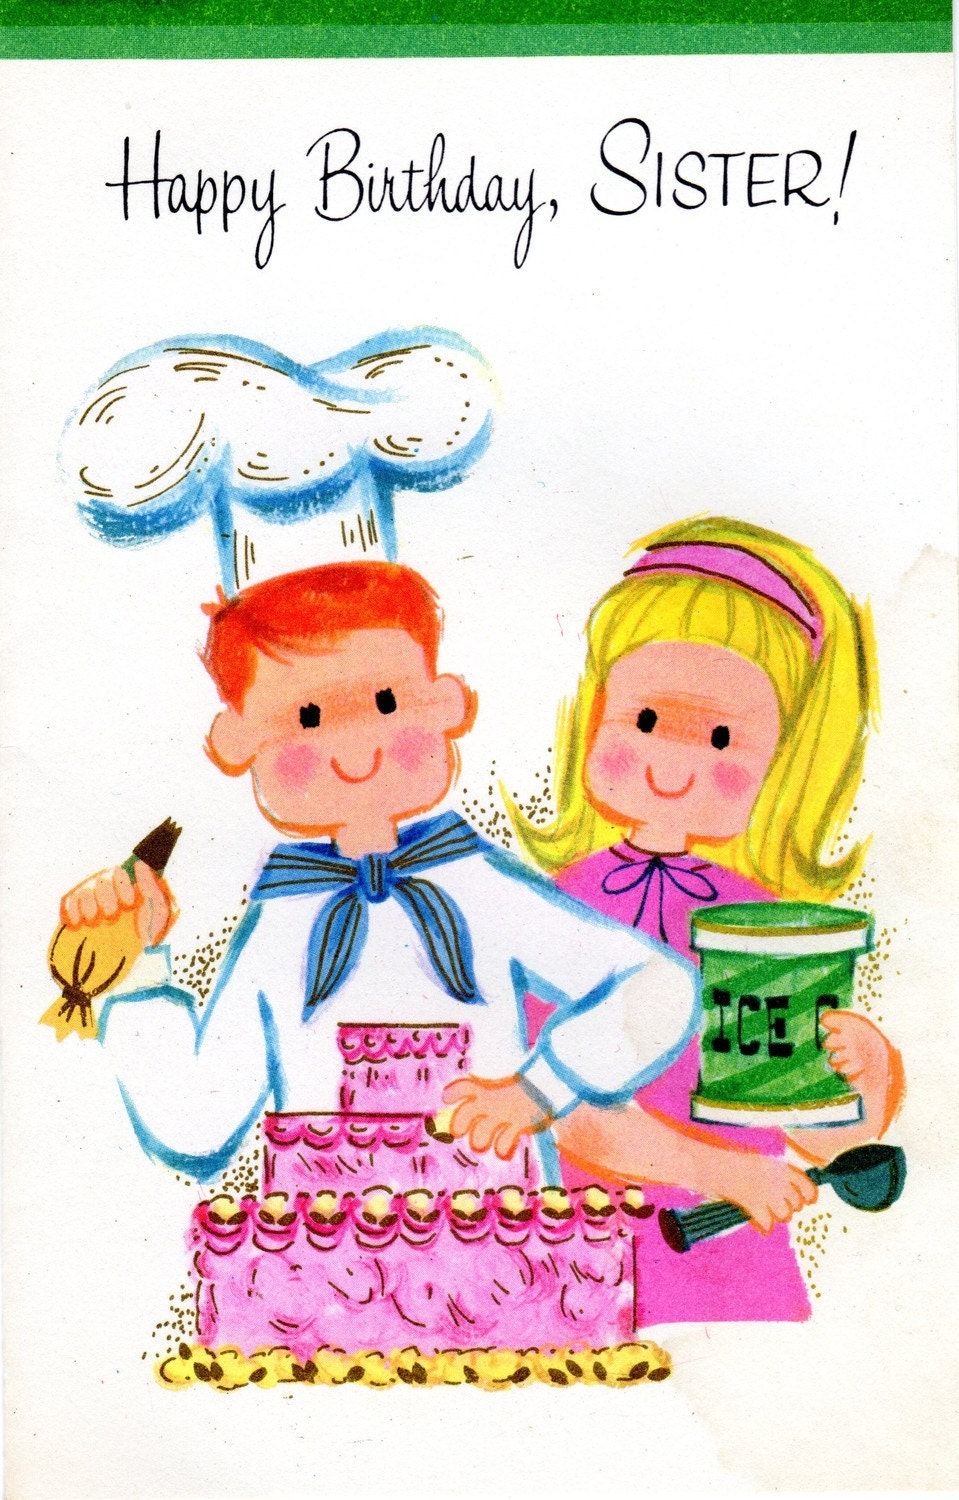 Birthday Cards Brother From Sister ~ Birthday card to sister chef brother summer by vintagepartypaper